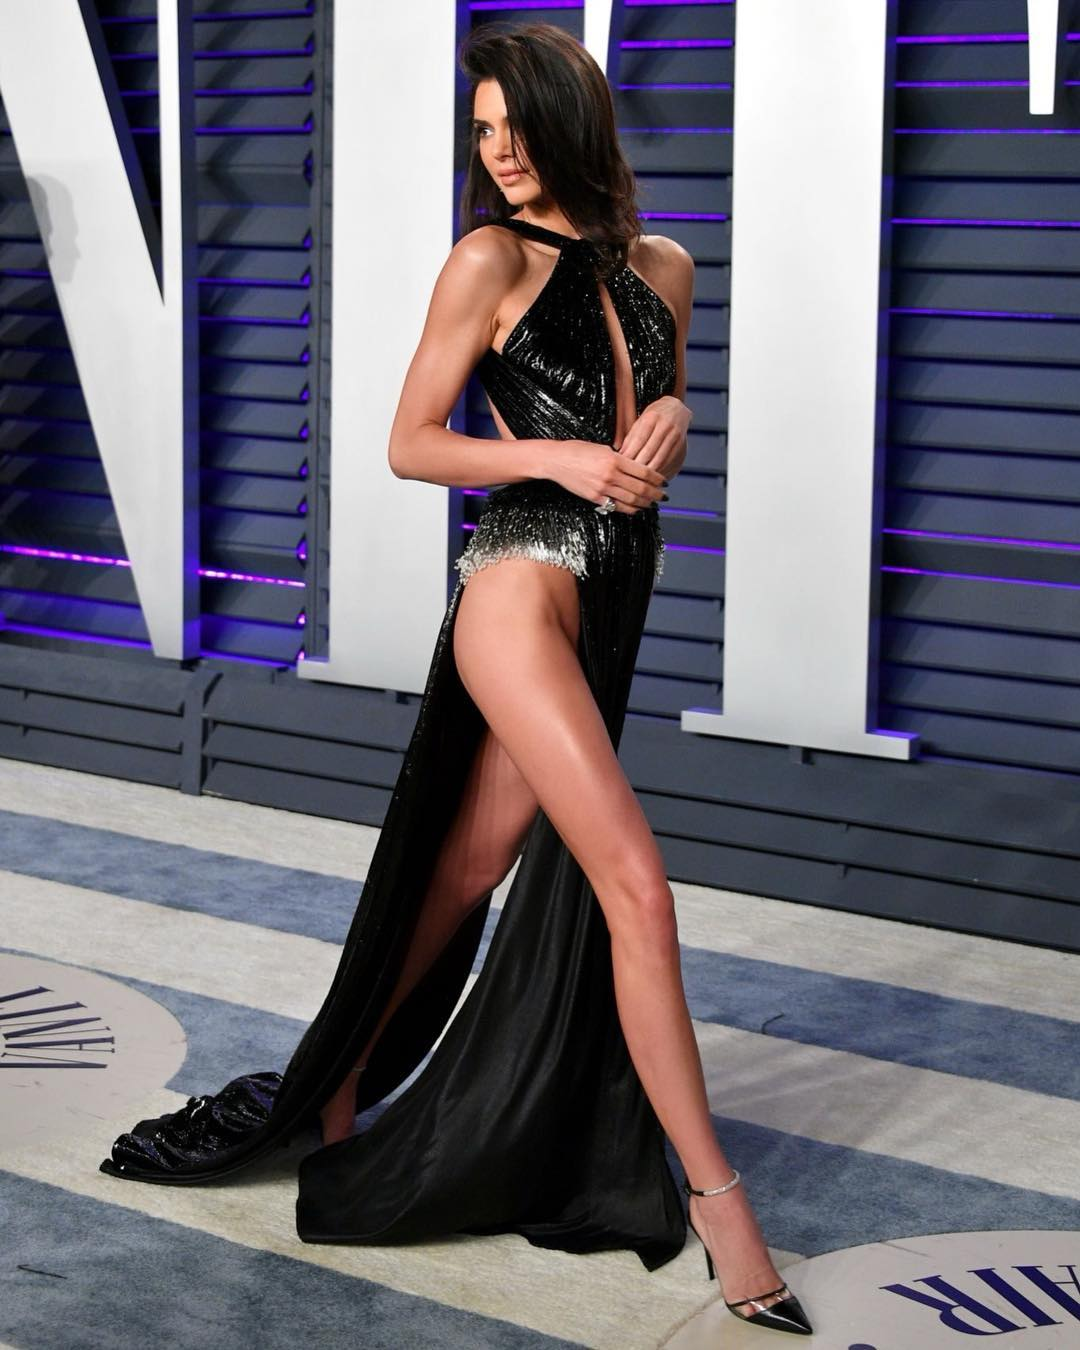 Kendall Jenner in The Oscars (2019)